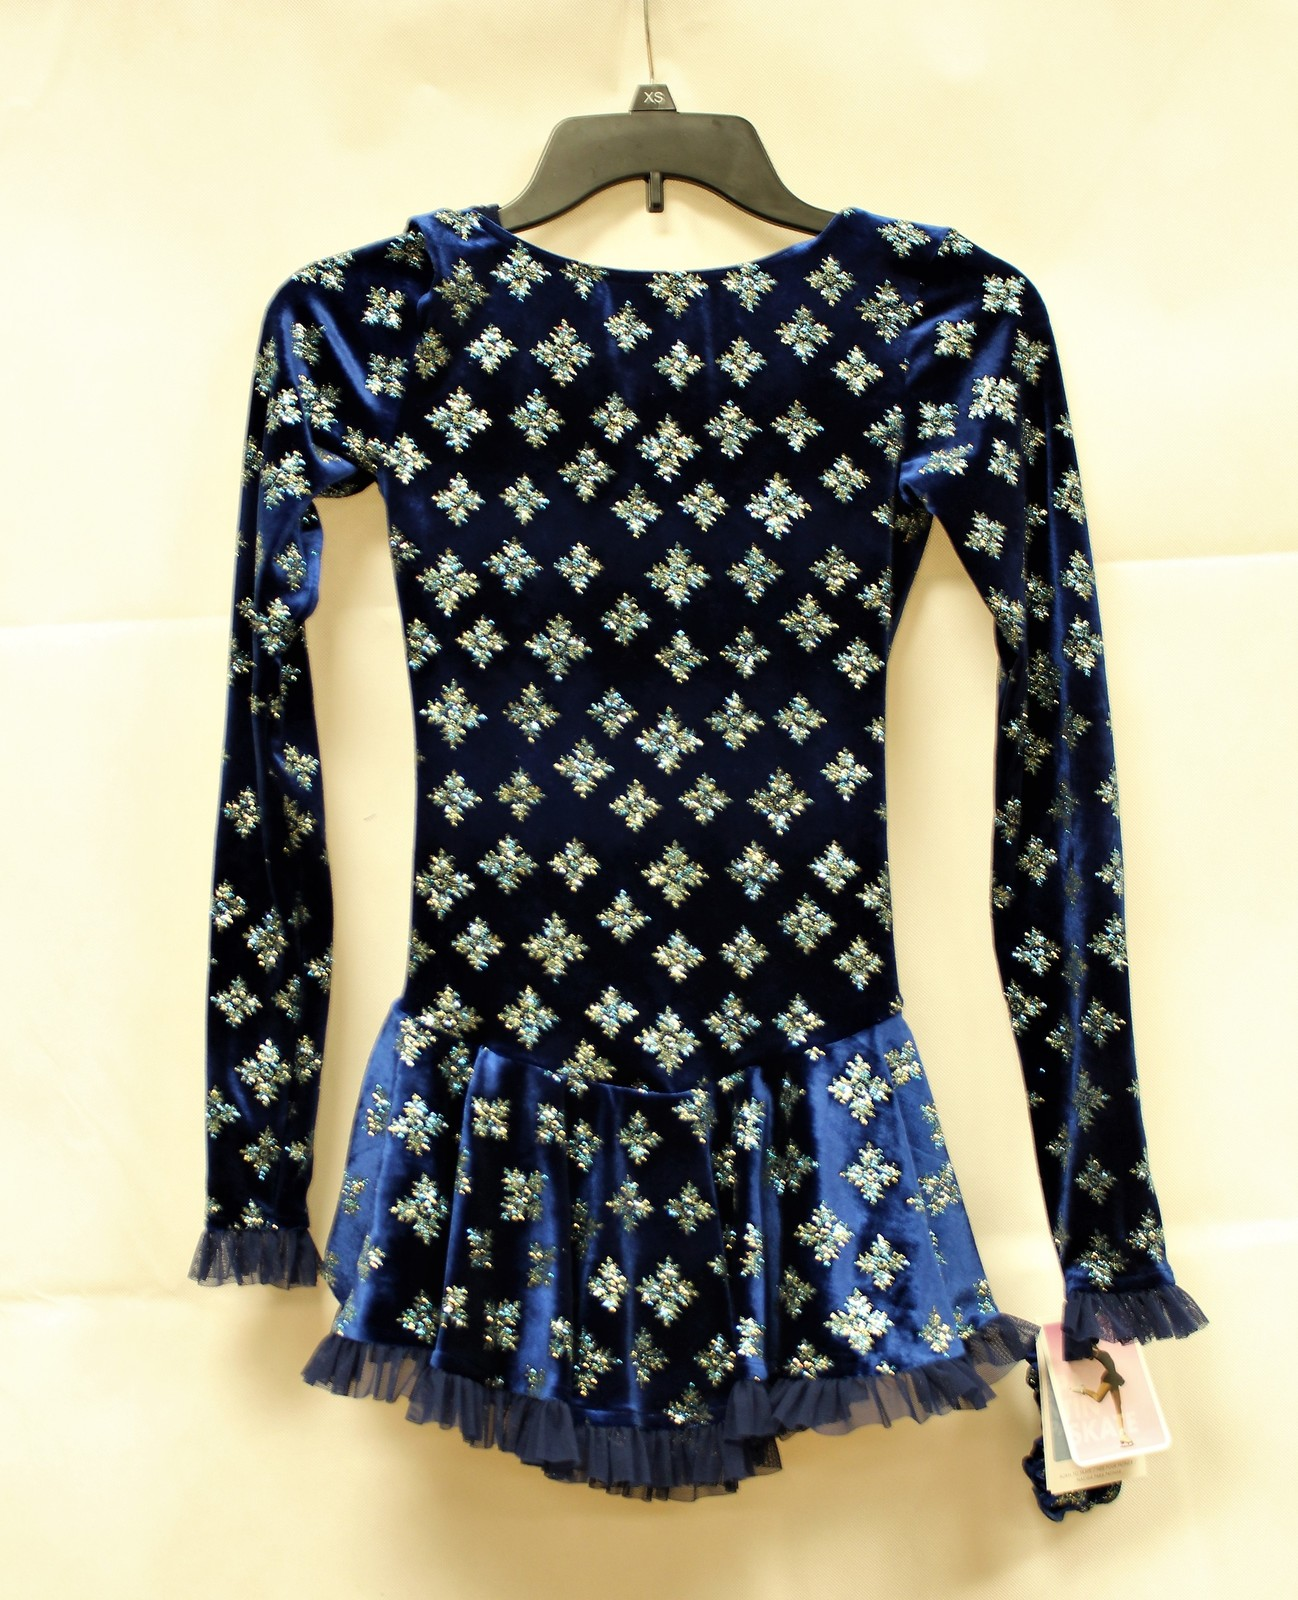 Primary image for Mondor Model 2739 Born to Skate Skating Dress - Blue Snowflakes Size Child 6X-7